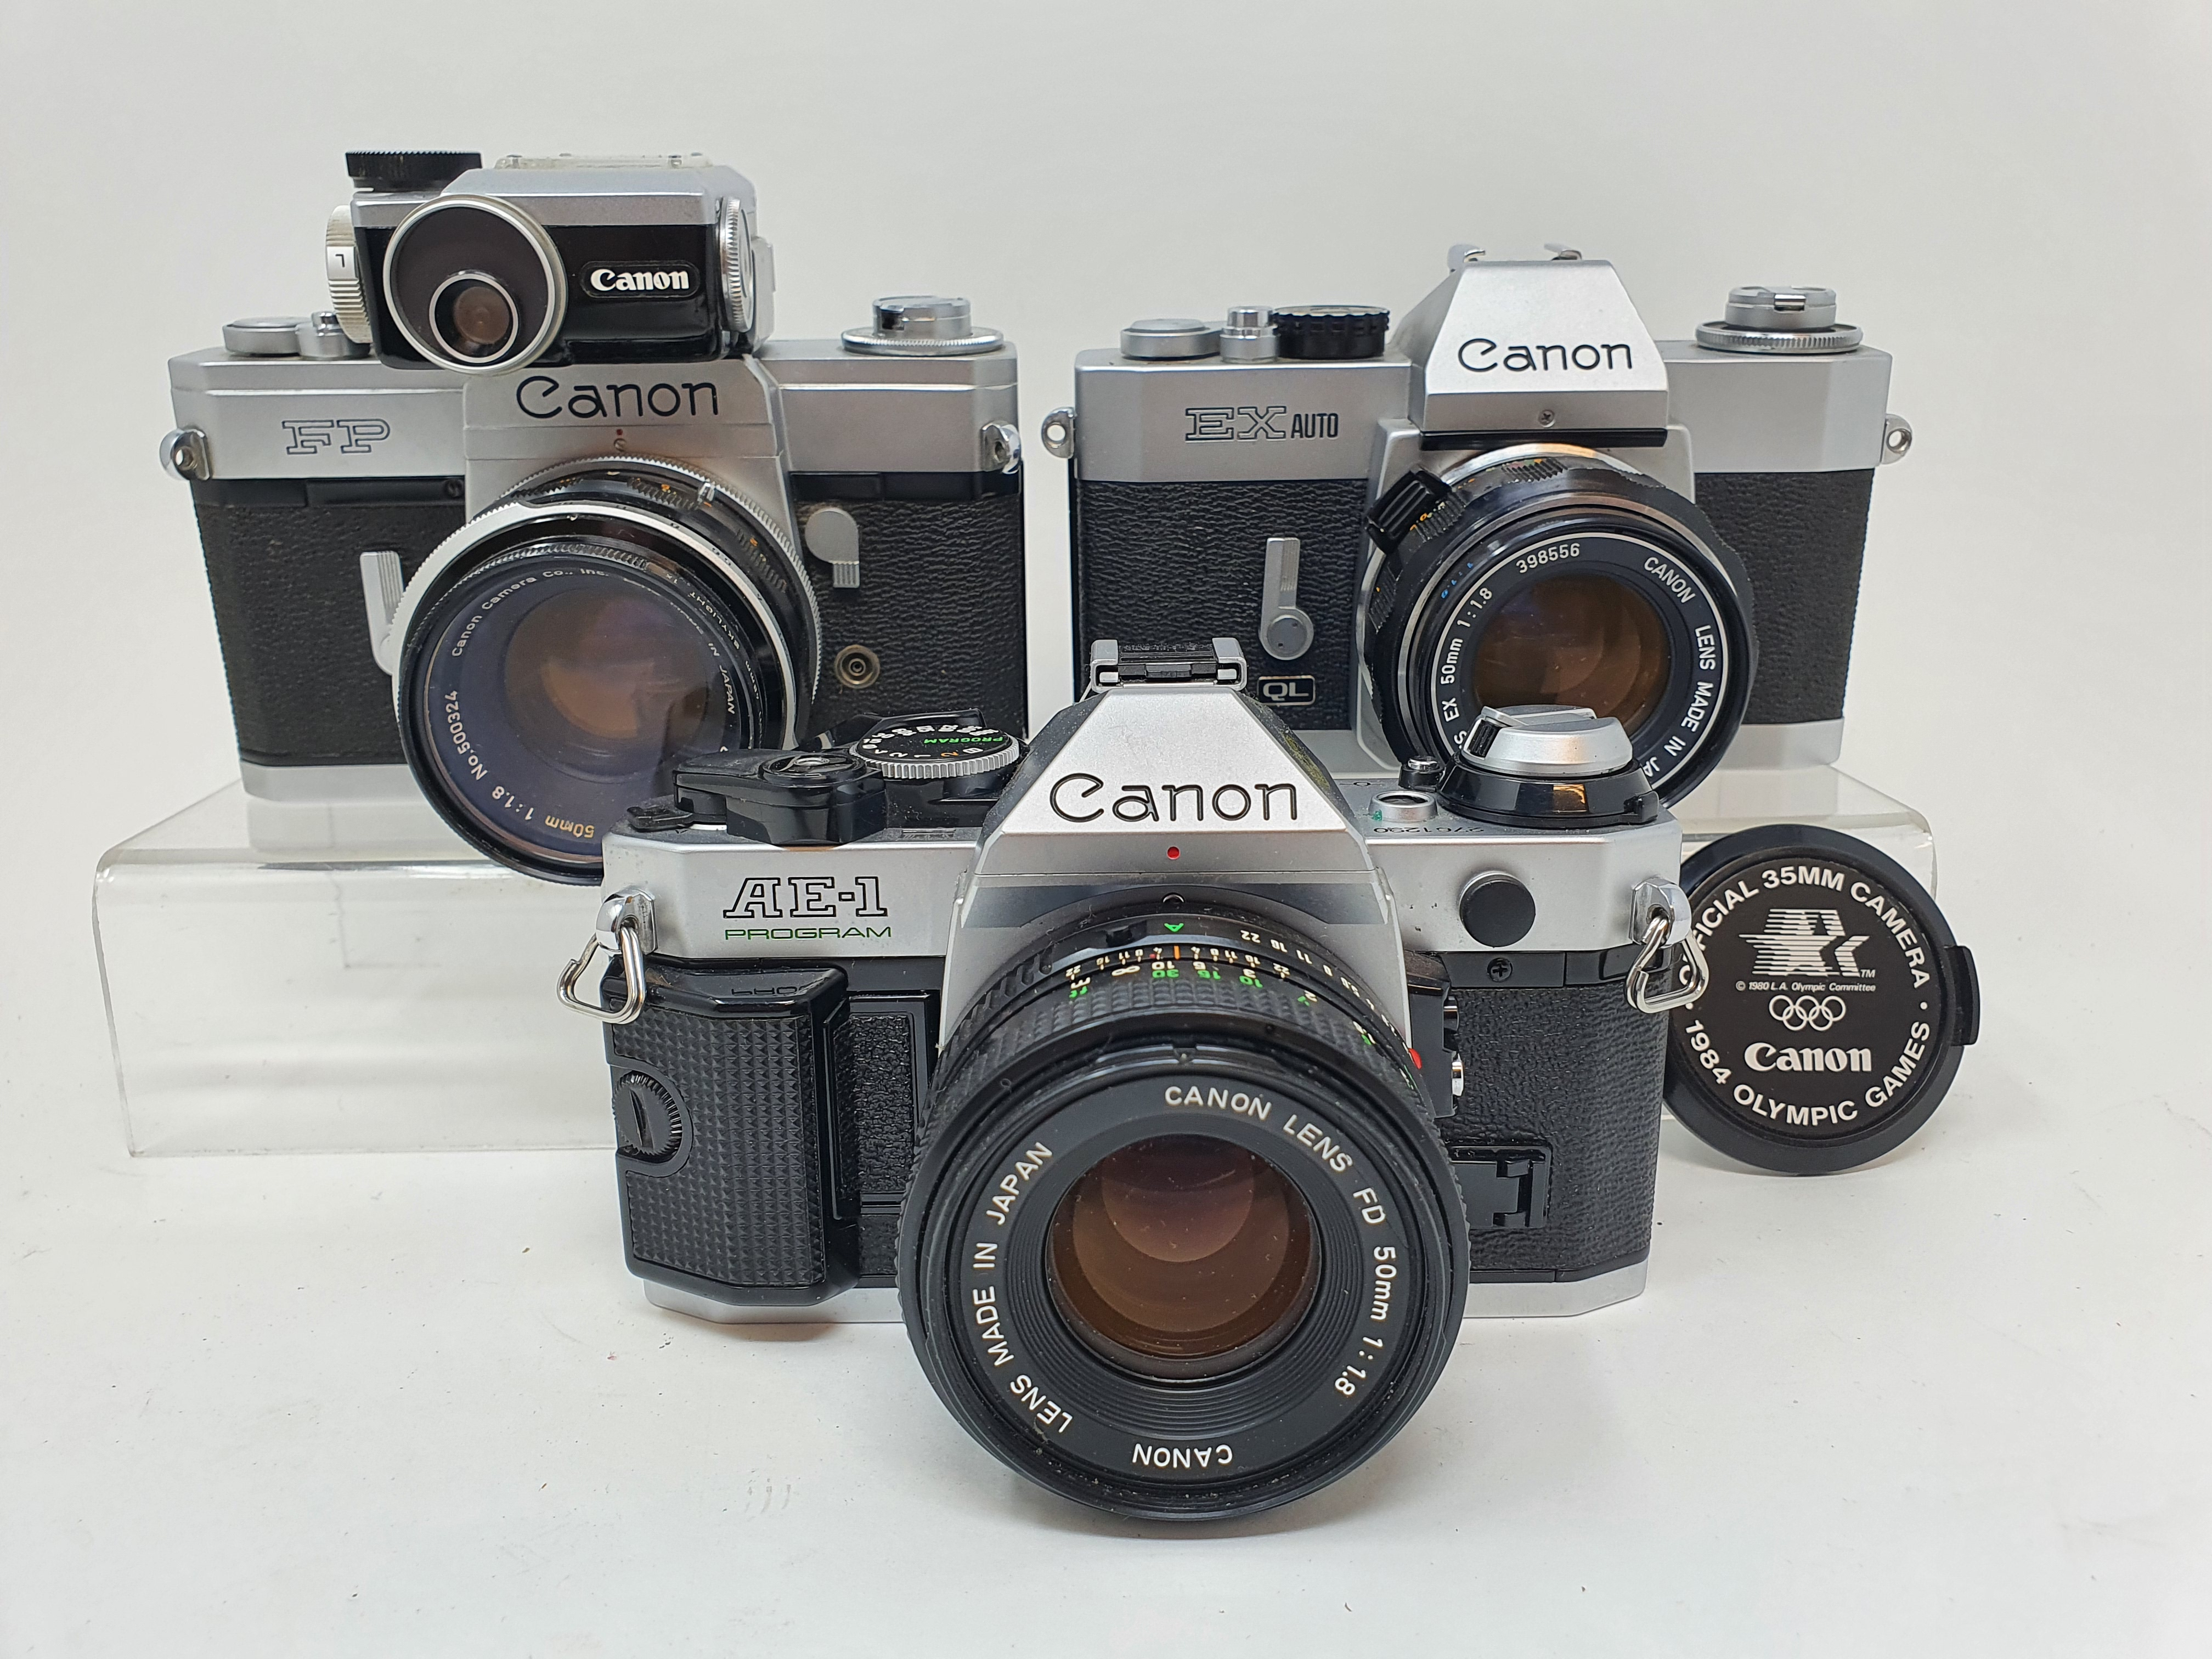 A Canon FP camera, a Canon EX Auto, and a Canon AE-1 camera (3) Provenance: Part of a vast single